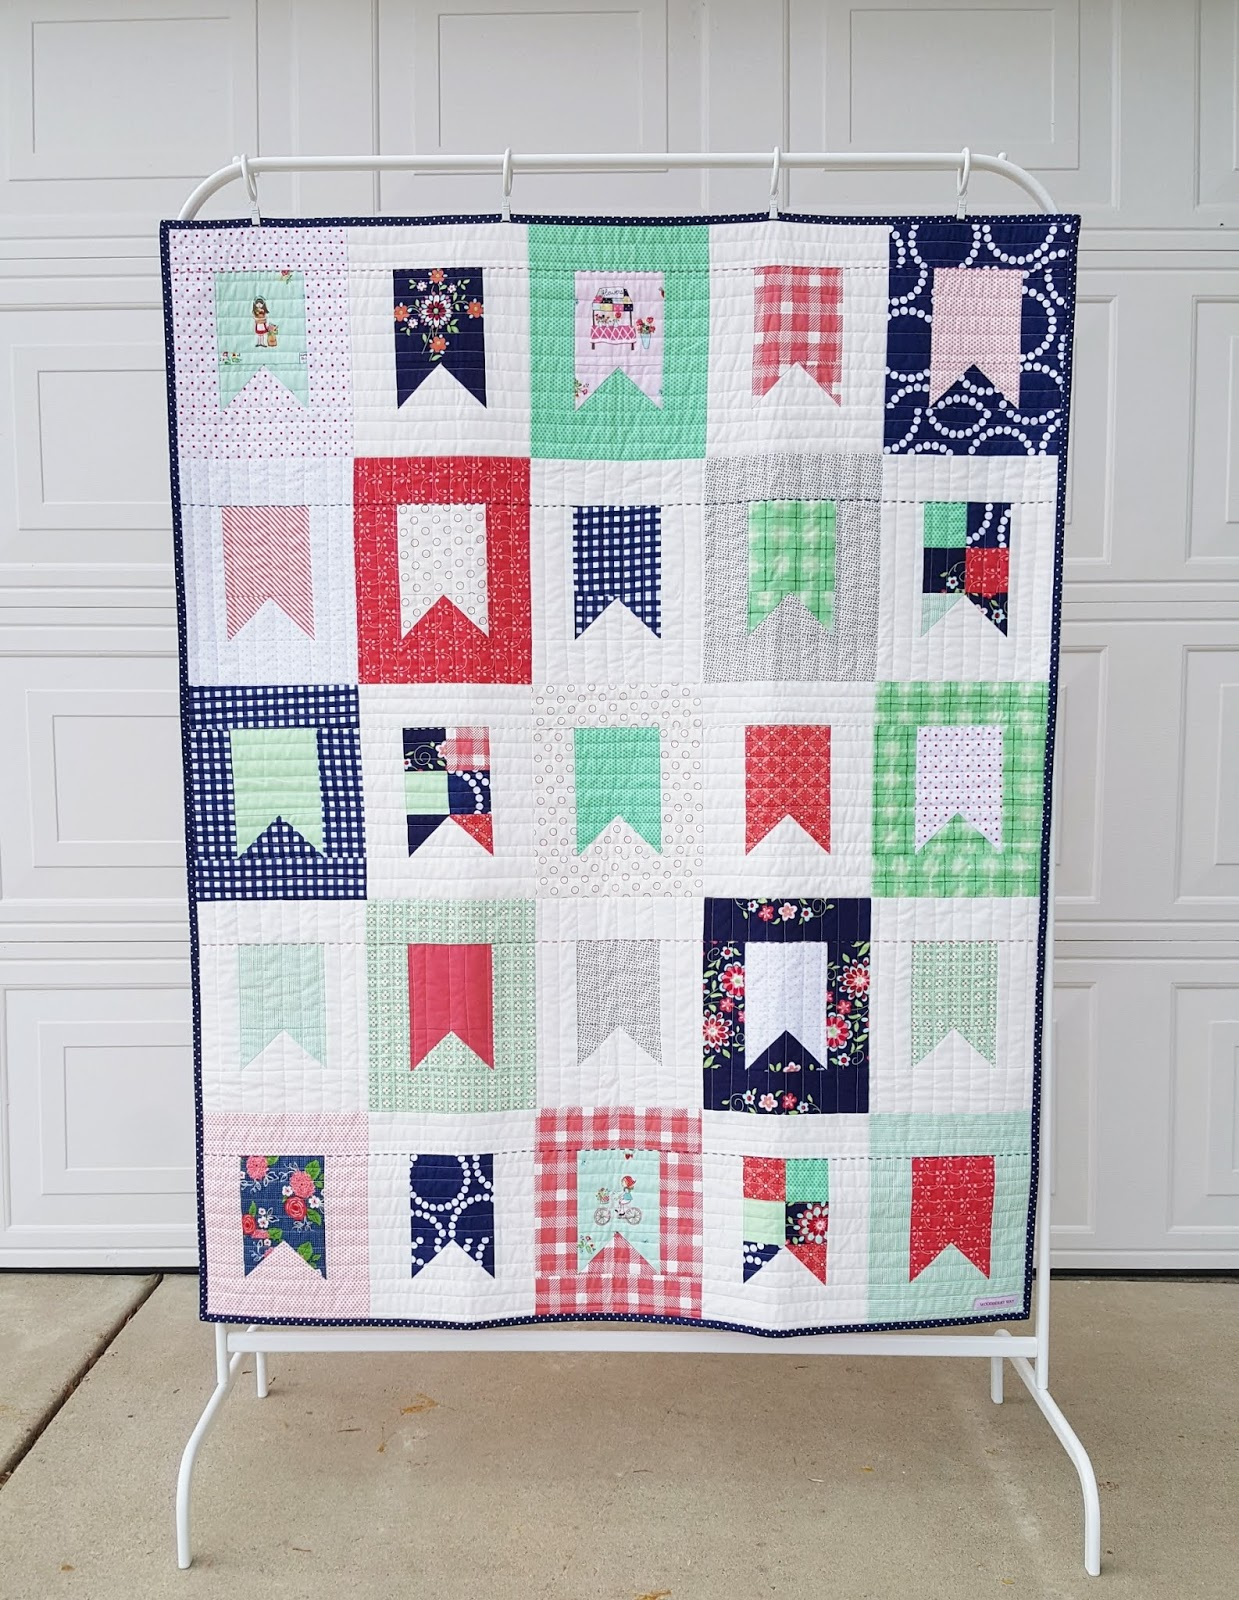 Celebrate Quilt with Tasha Noel, and Pixelated Heart Quilt